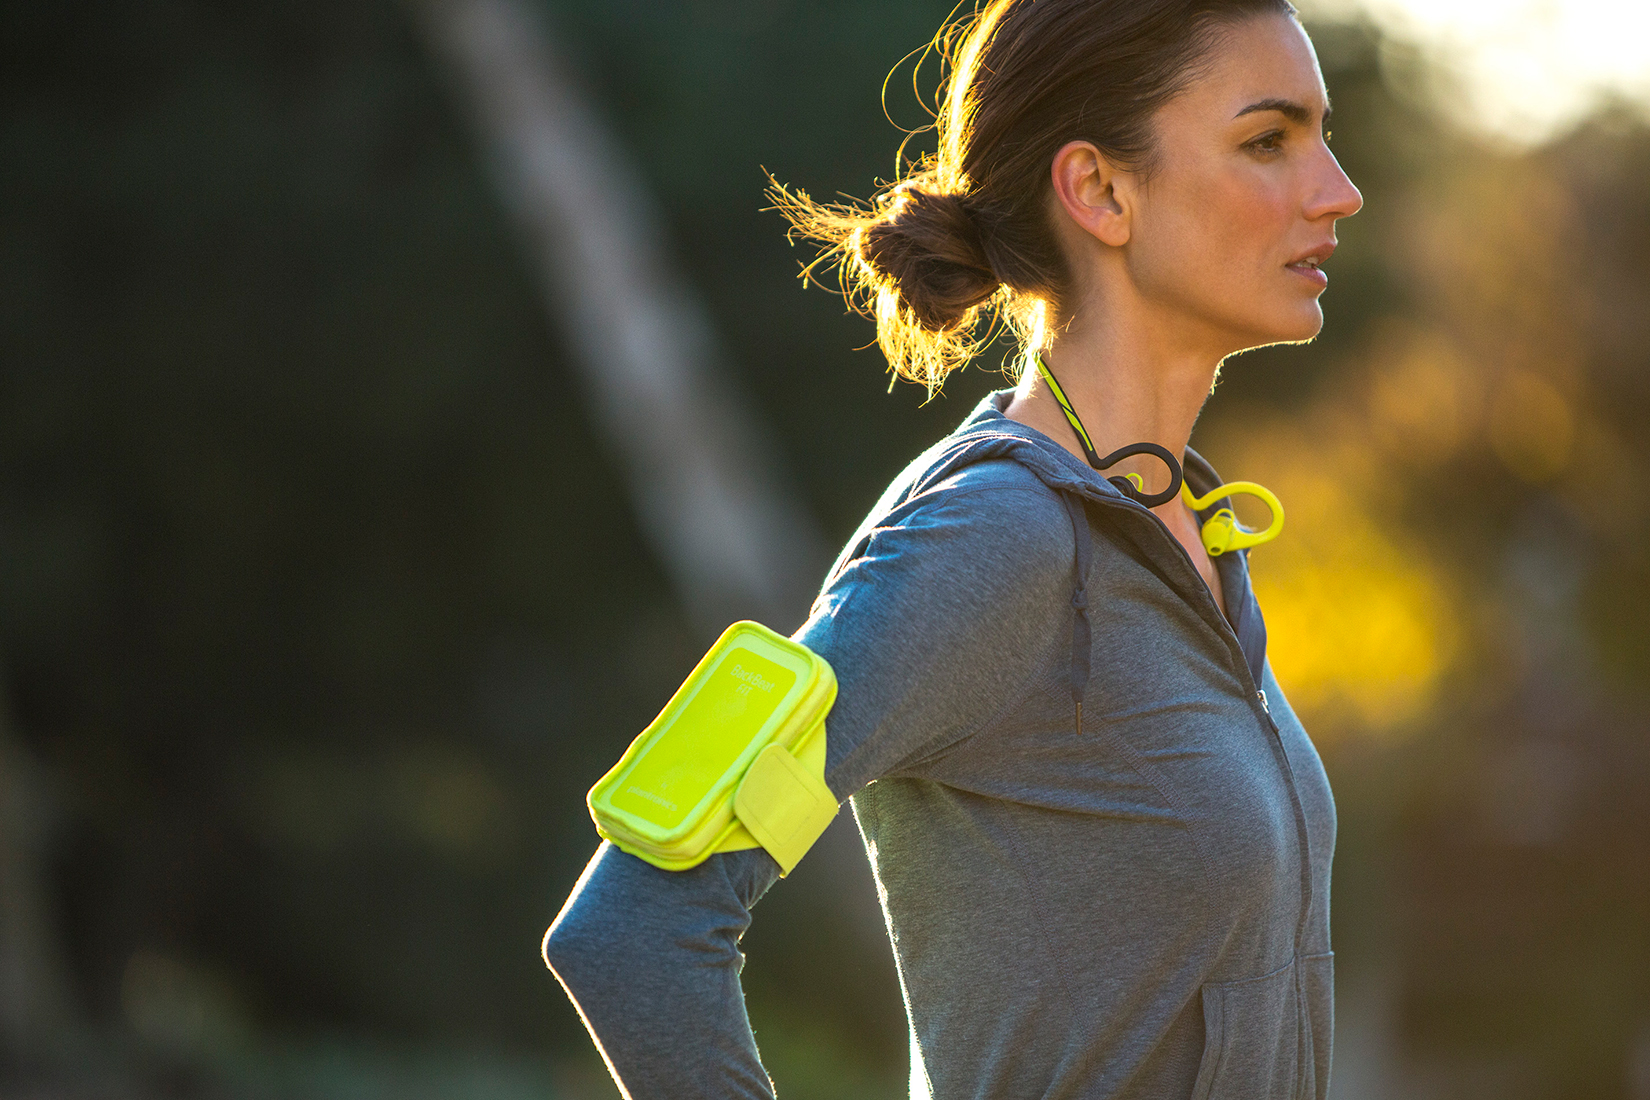 Plantronics_BackBeatFIT_Female_Park_Running-7825